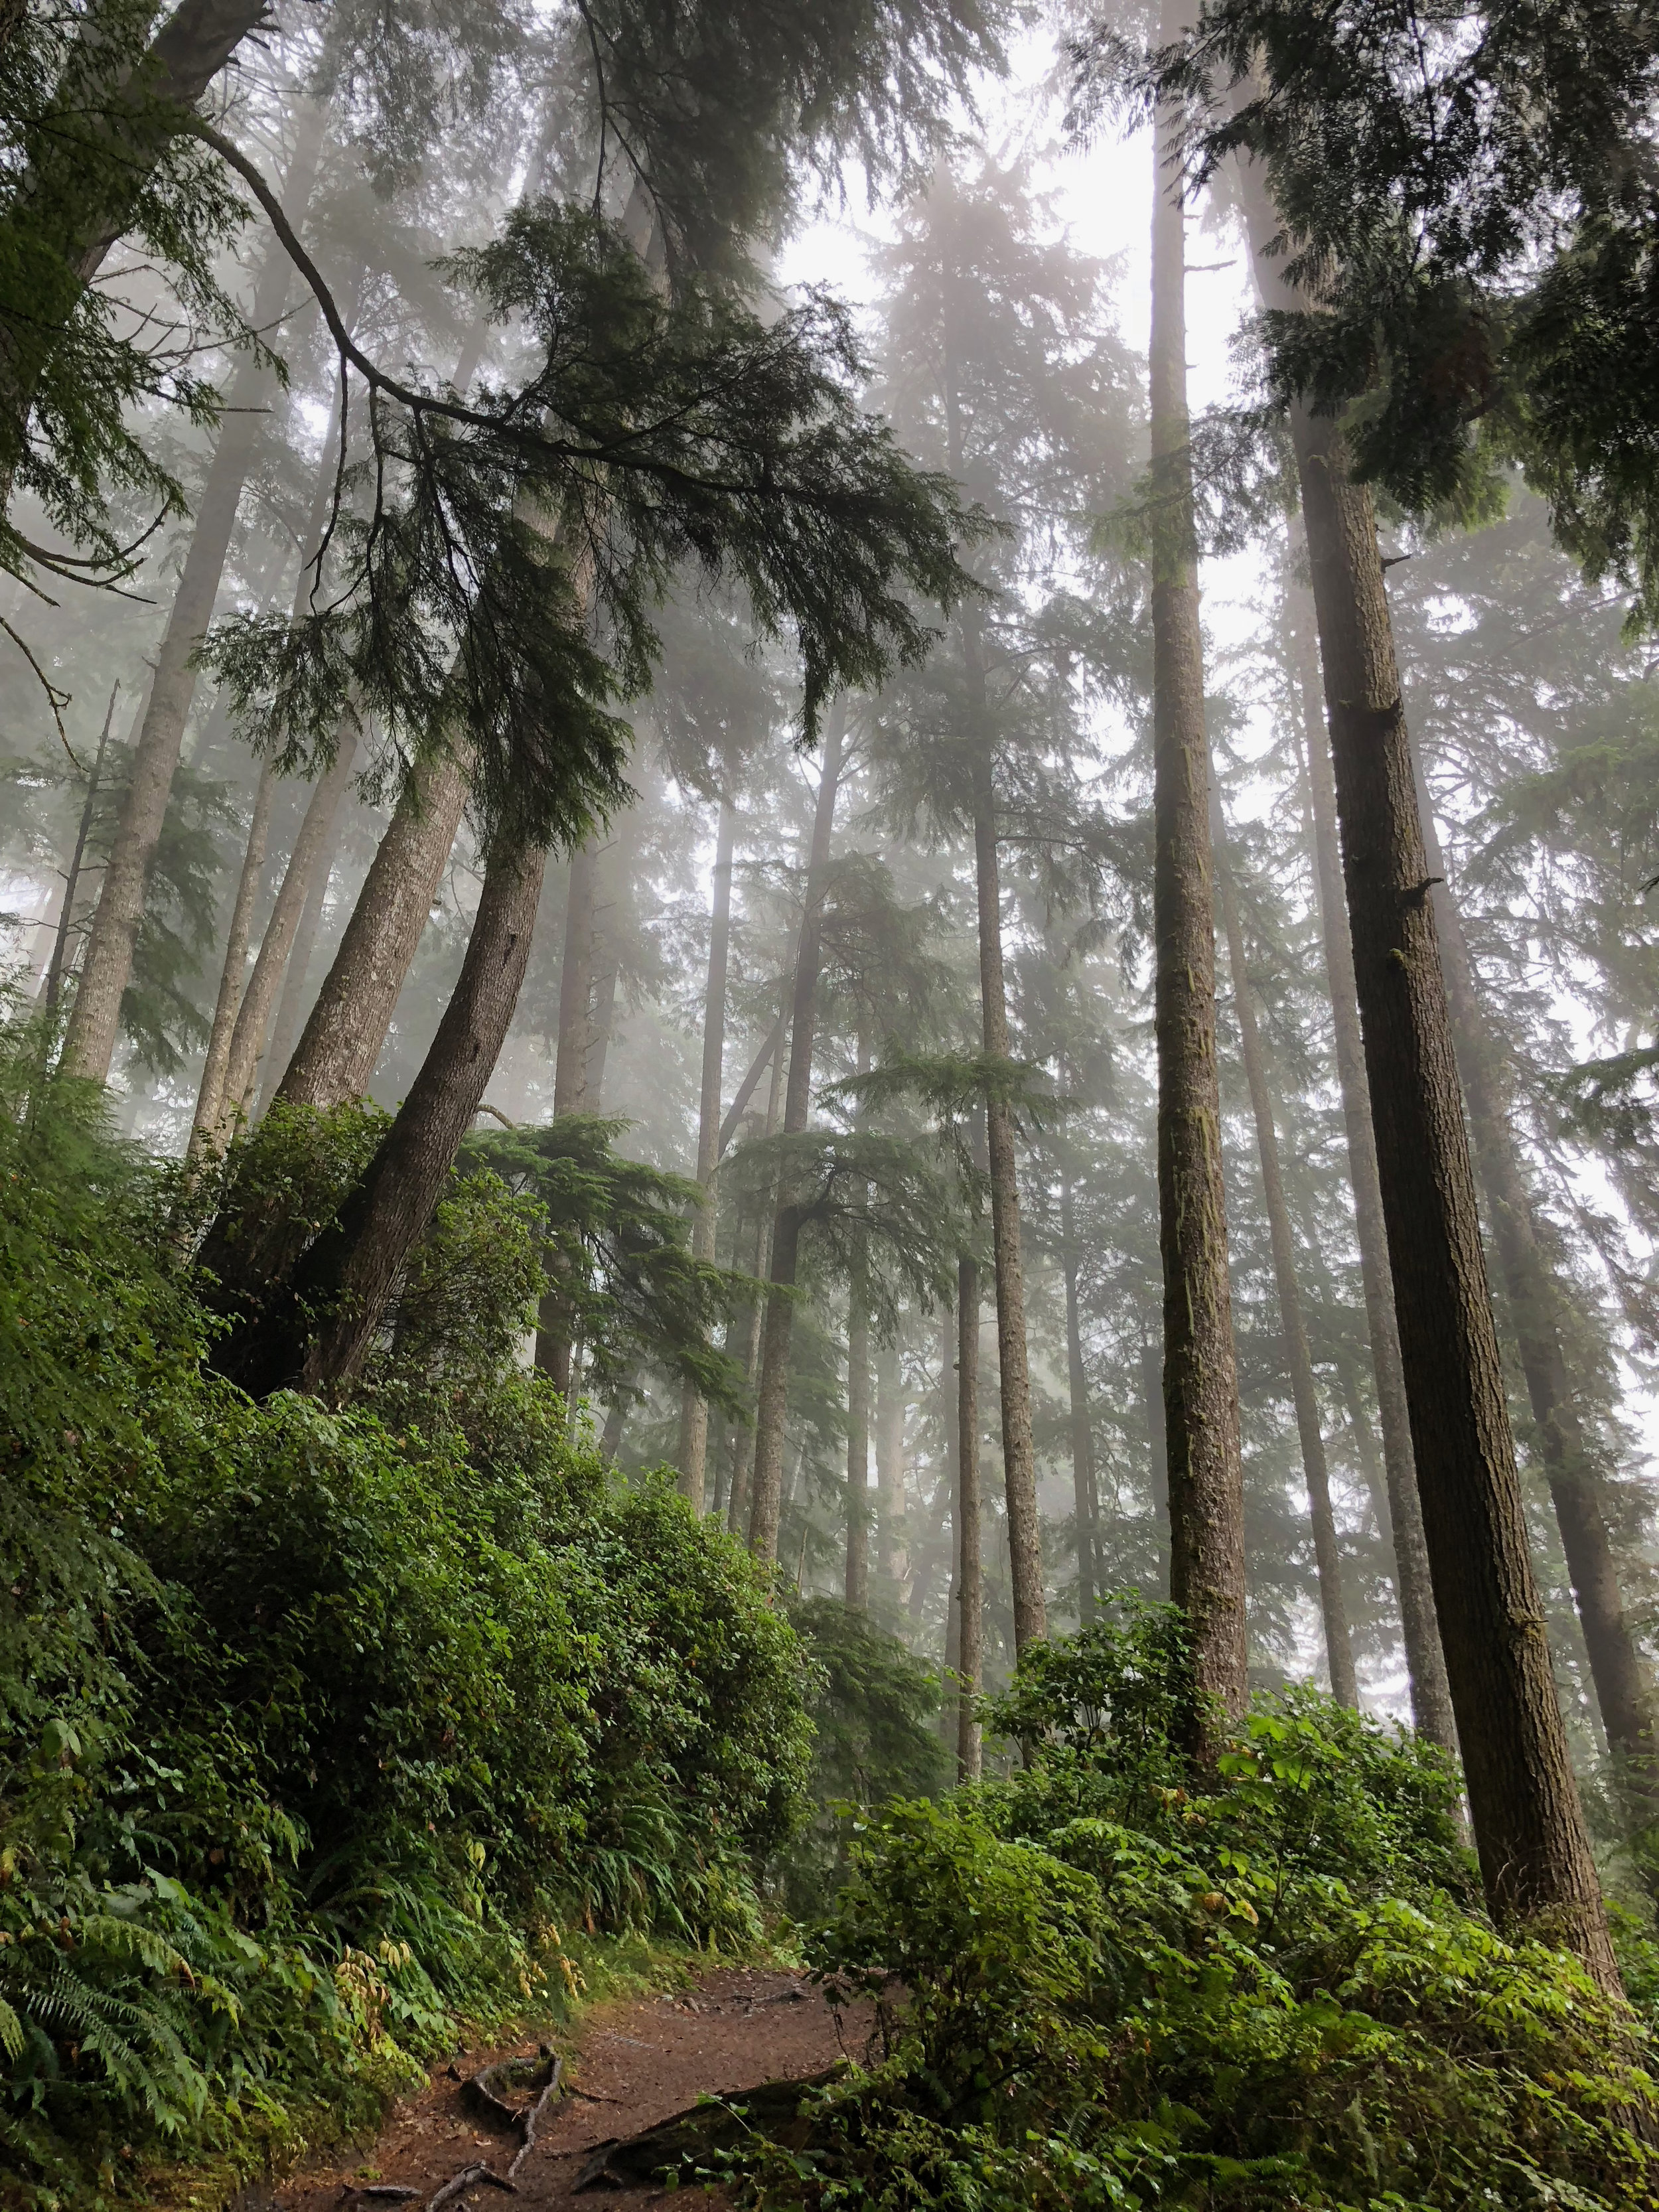 TALL TREES   The biggest Douglas Fir in the world lives on Vancouver Island. Meet some trees over 1000 years old.